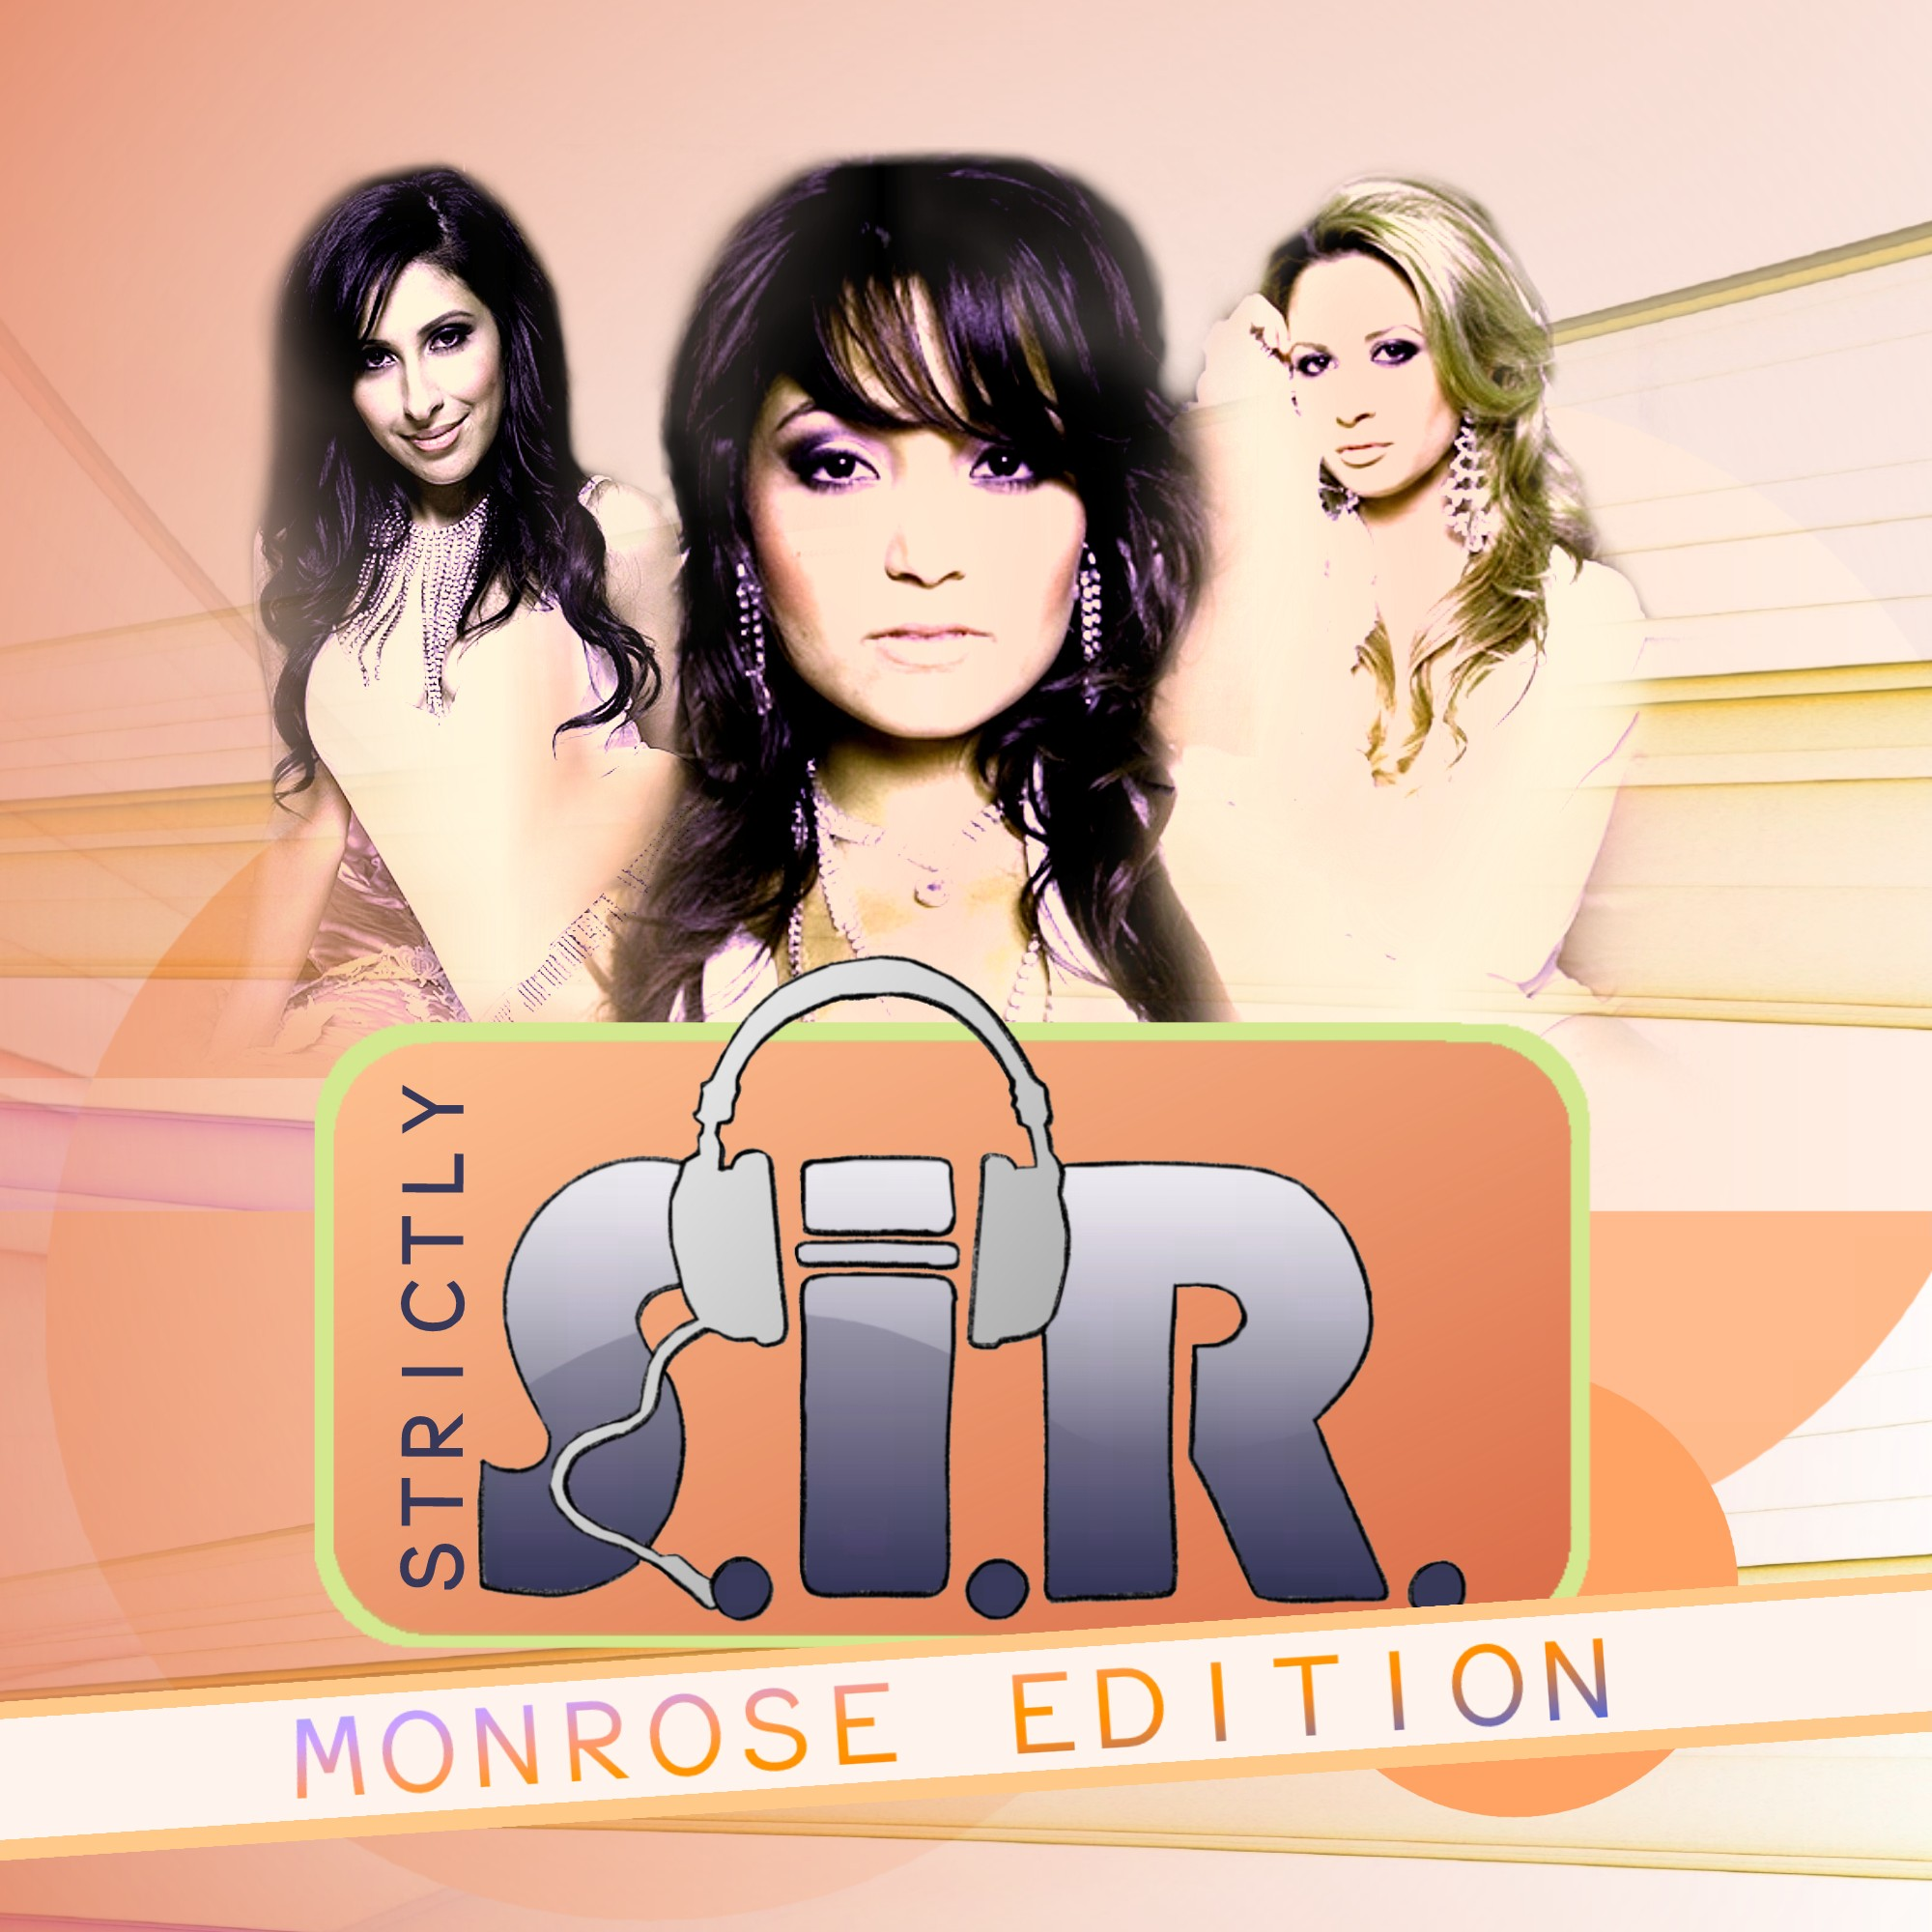 09 - Monrose vs. Britney Spears - Strictly Physical (At the Circus) (S.I.R. Remix)